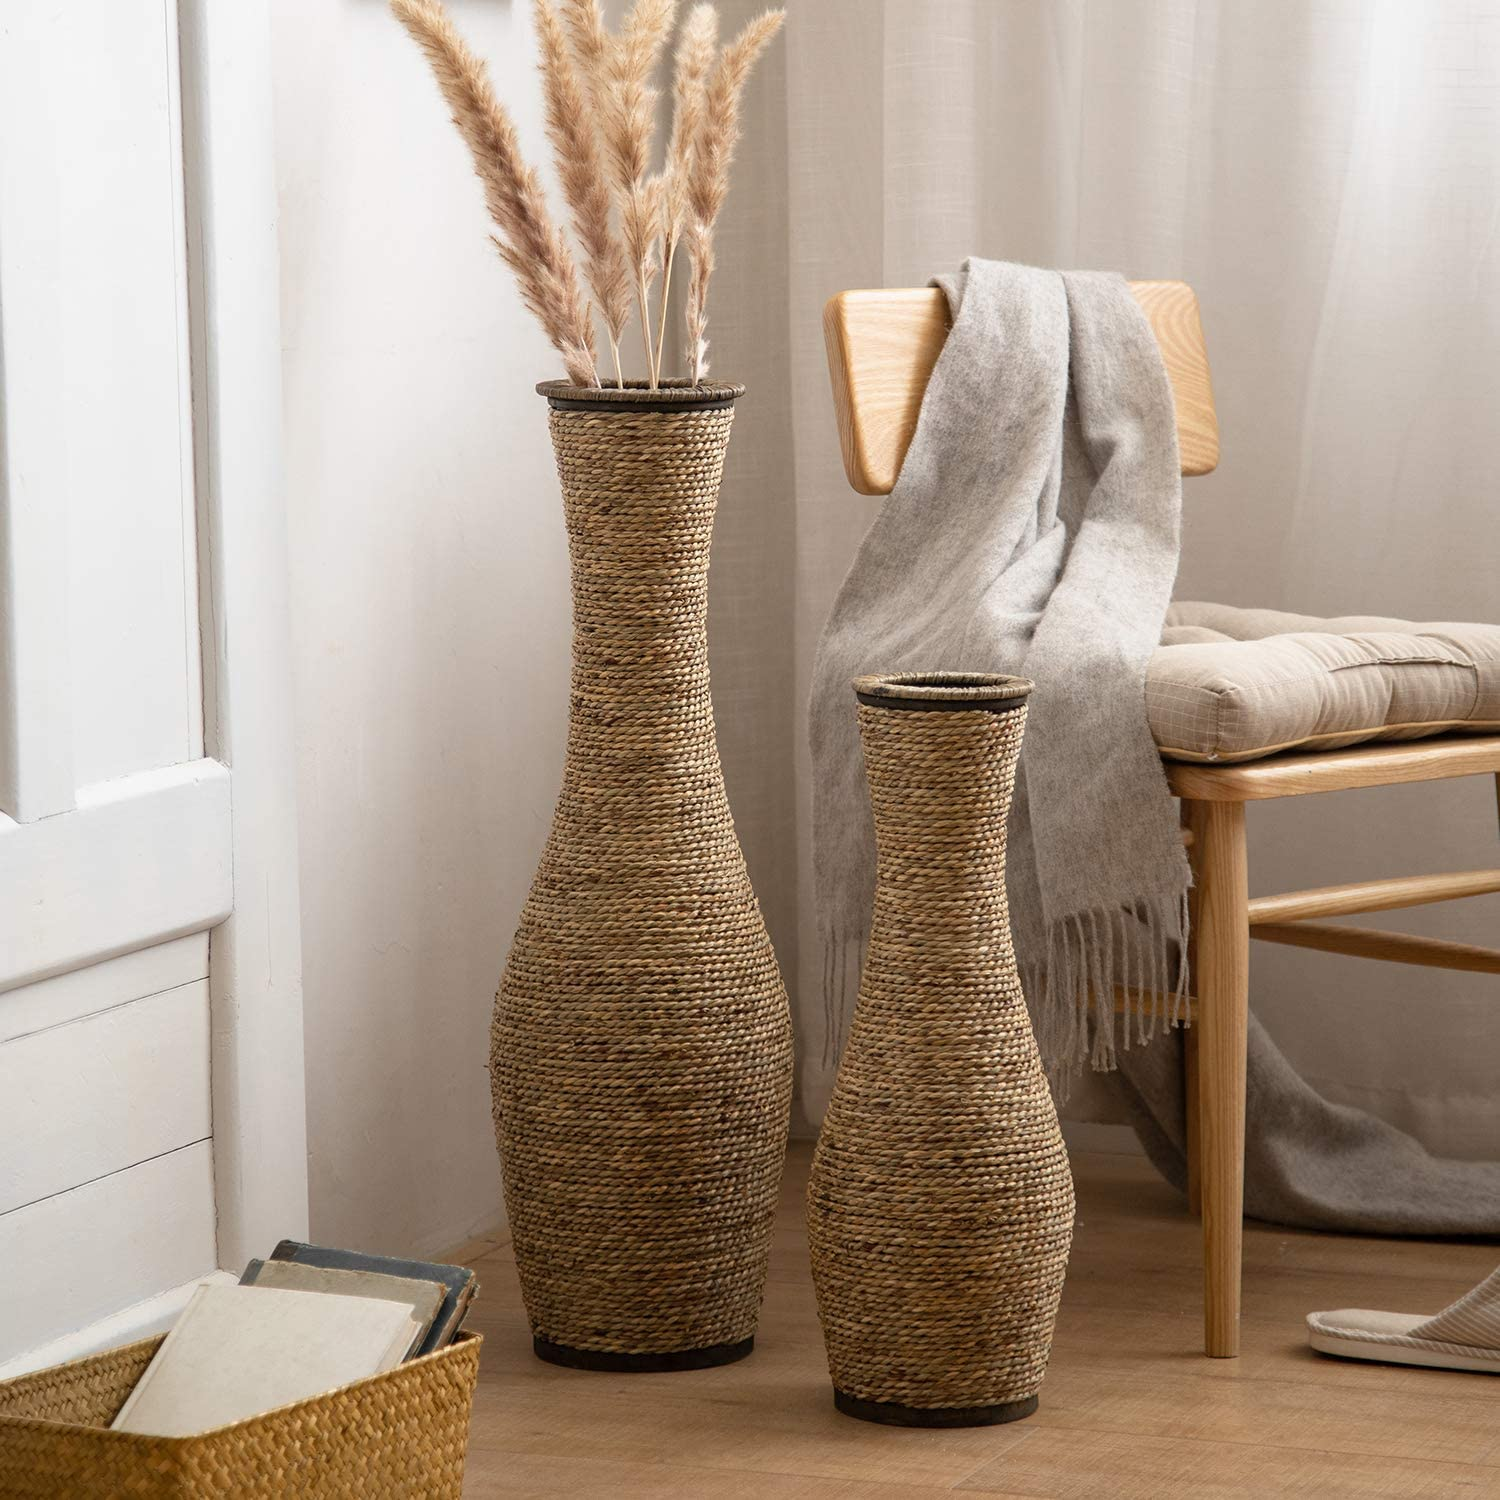 Amazon Com Huidao Tall Floor Vase 28 High Bamboo And Grass Standing Vase Floor Vase For Home Office Living Room Decor Style 2 Large Home Kitchen